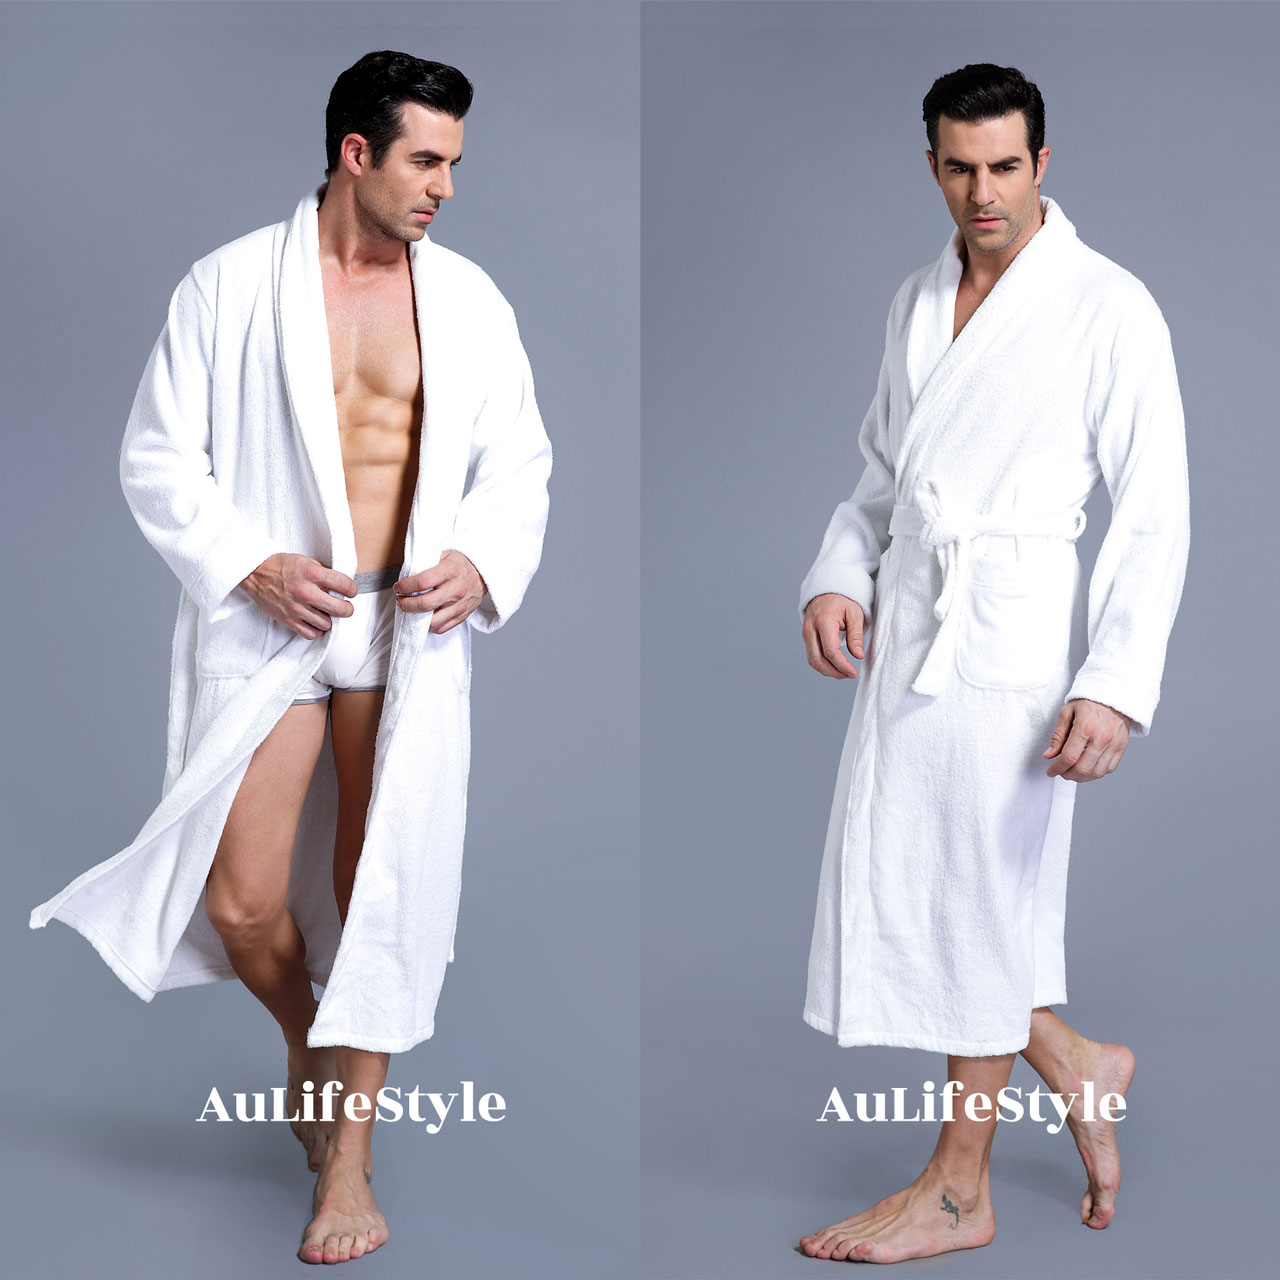 XXXL LUXURY 100% COTTON TERRY TOWELLING BATH ROBE MEN   WOMEN SOFT ... 3902b341d